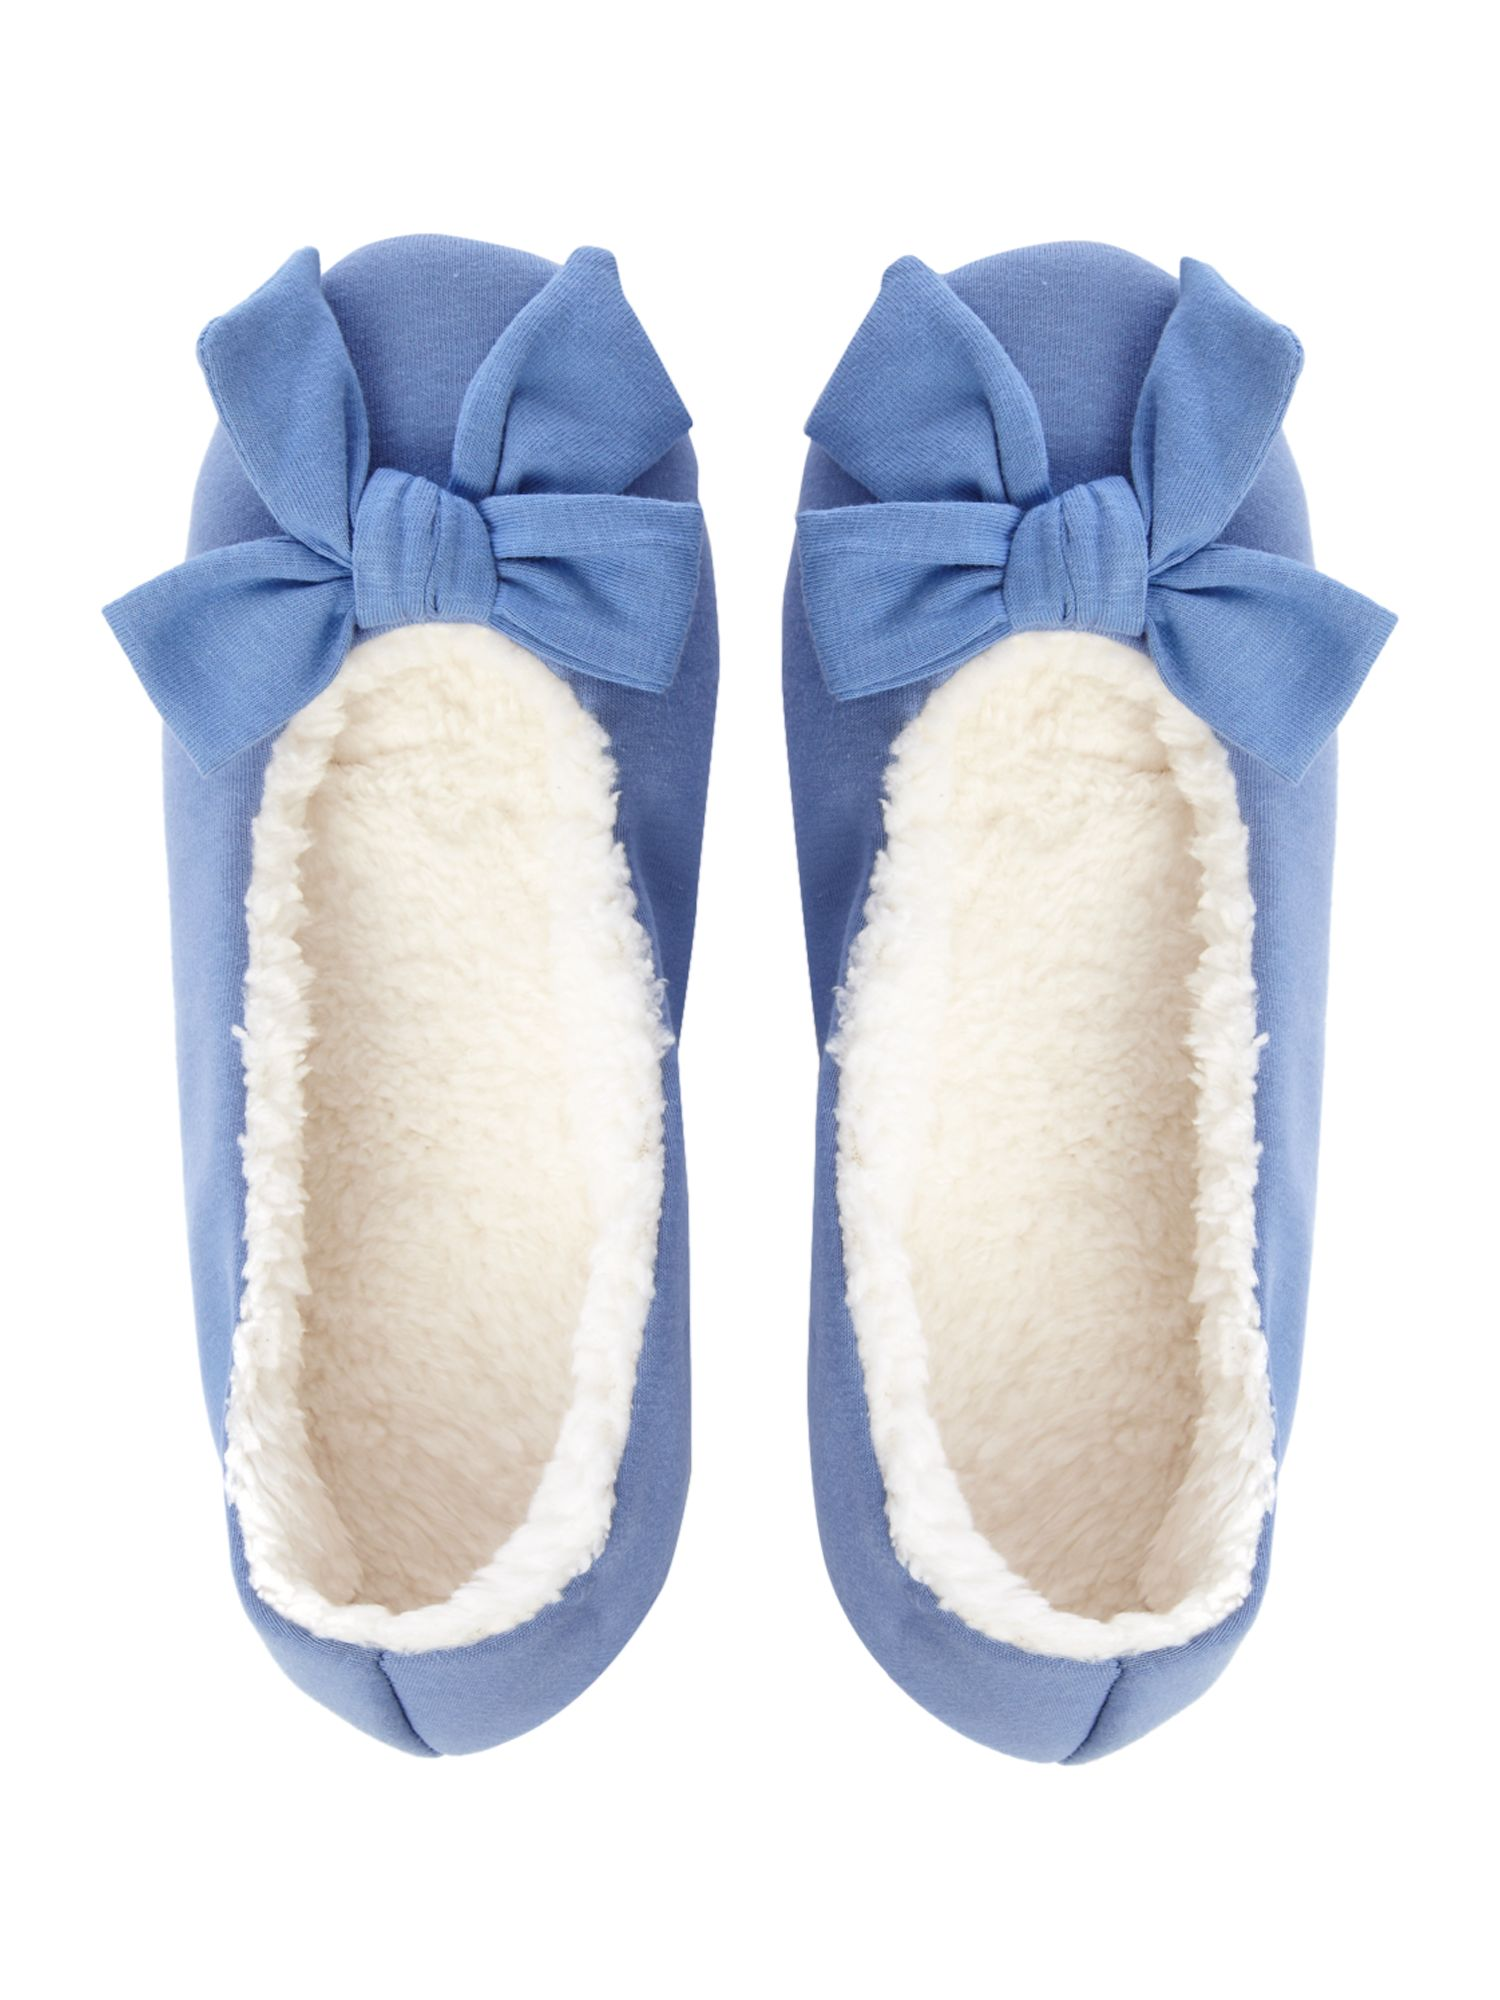 Bow front slippers